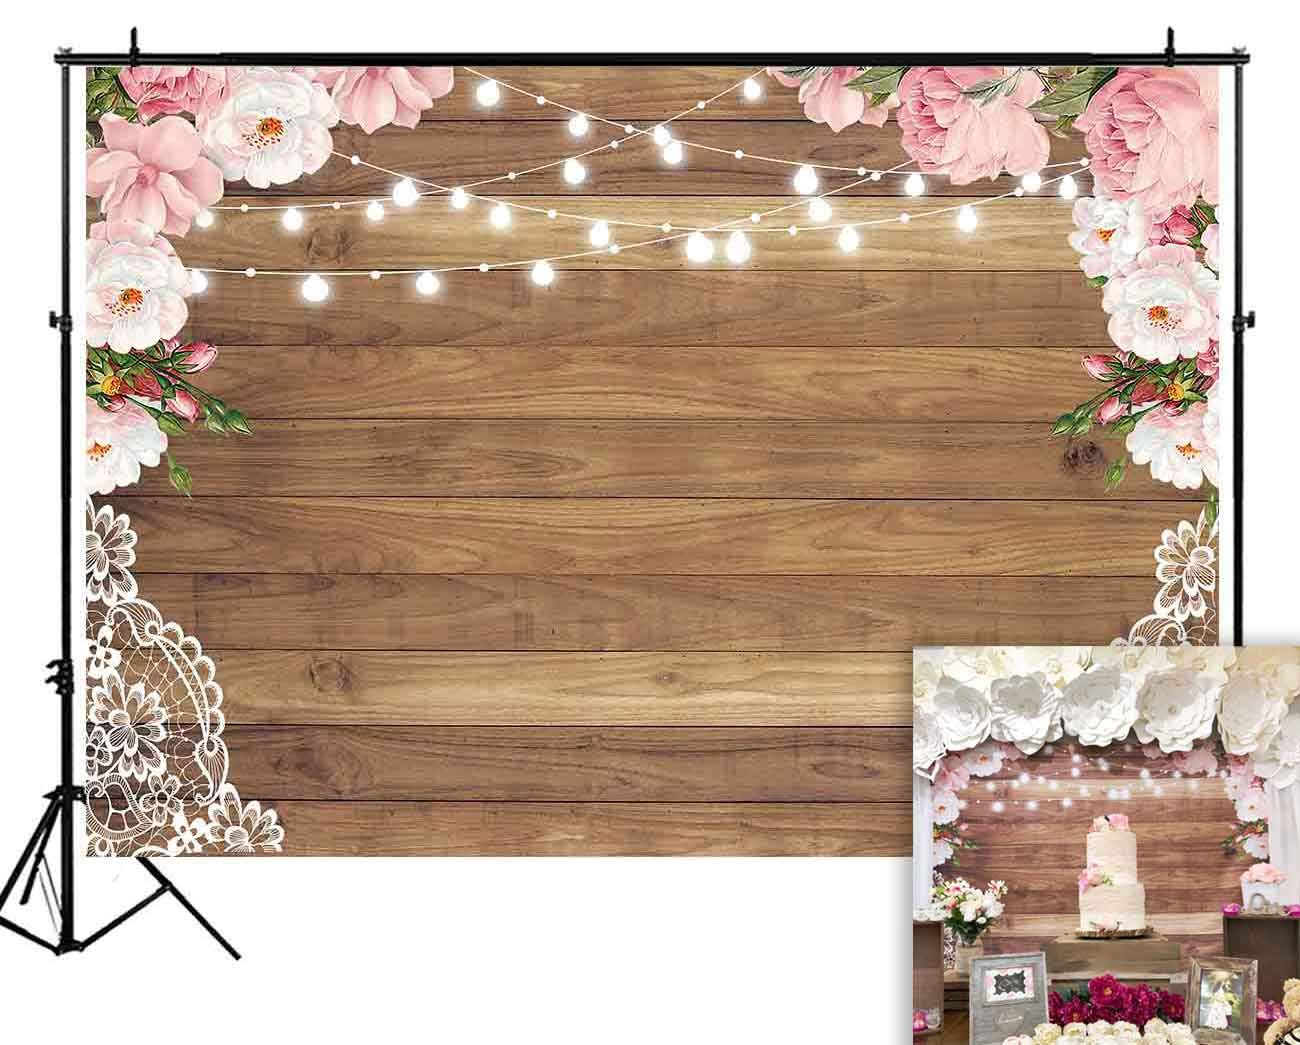 Funnytree 7X5ft Soft Fabric Flowers Wood Lace Rustic Backdrop Durable No Wrinkle Wedding Floral Photography Background Wooden Board Floor Bridal Shower Baby Birthday Party Banner Photo Studio Props by Funnytree